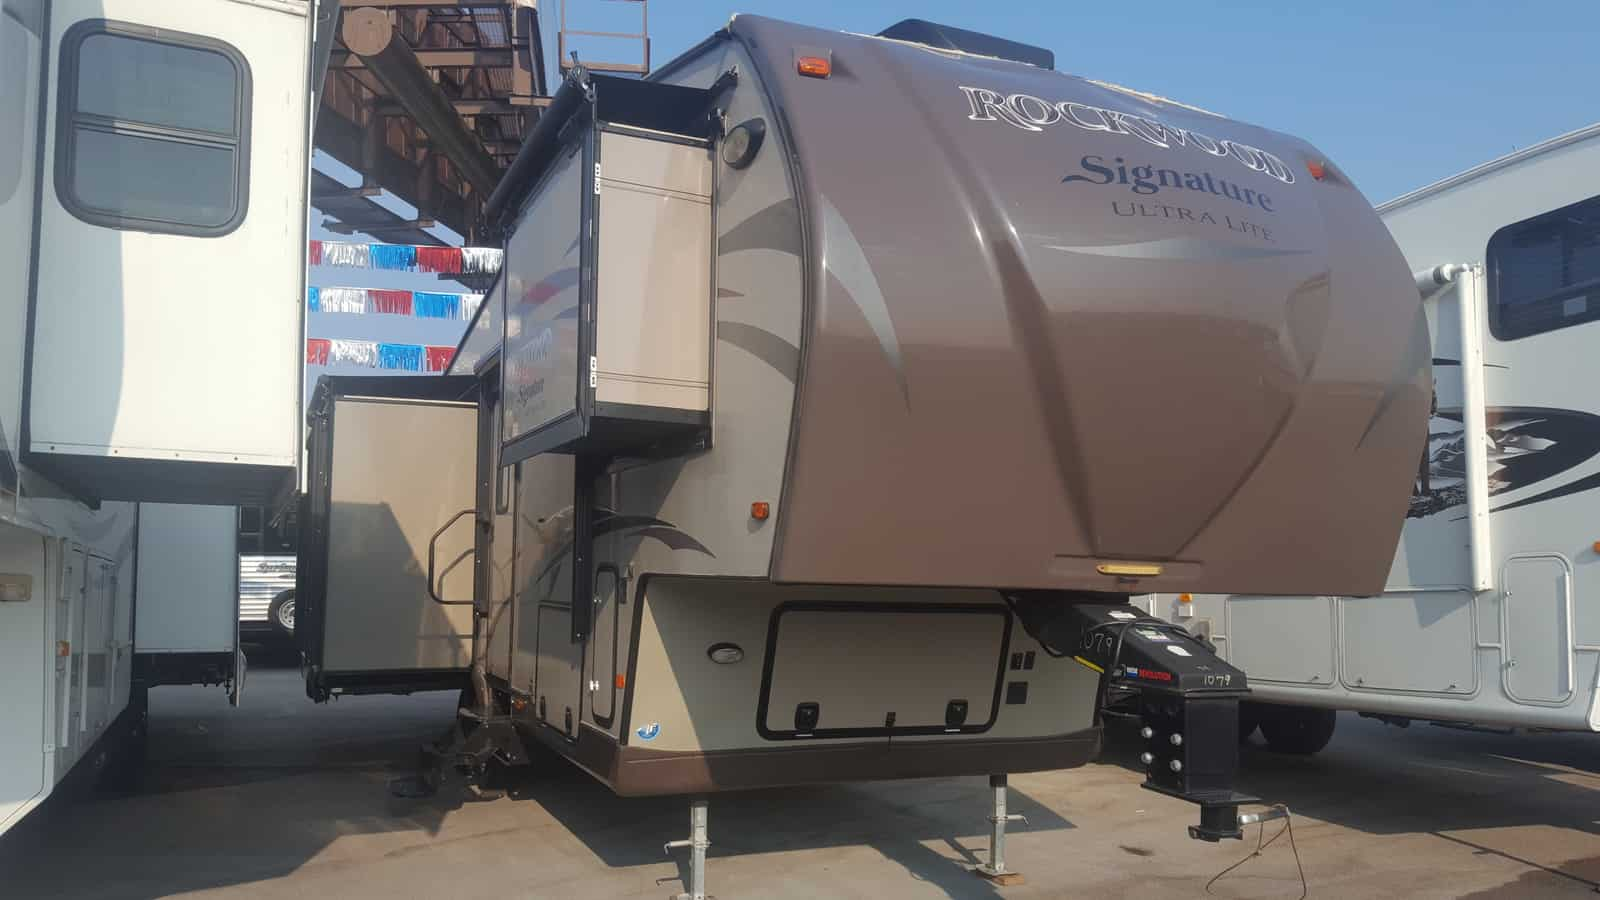 USED 2015 Forest River ROCKWOOD SIGNATURE 8289WS - American RV